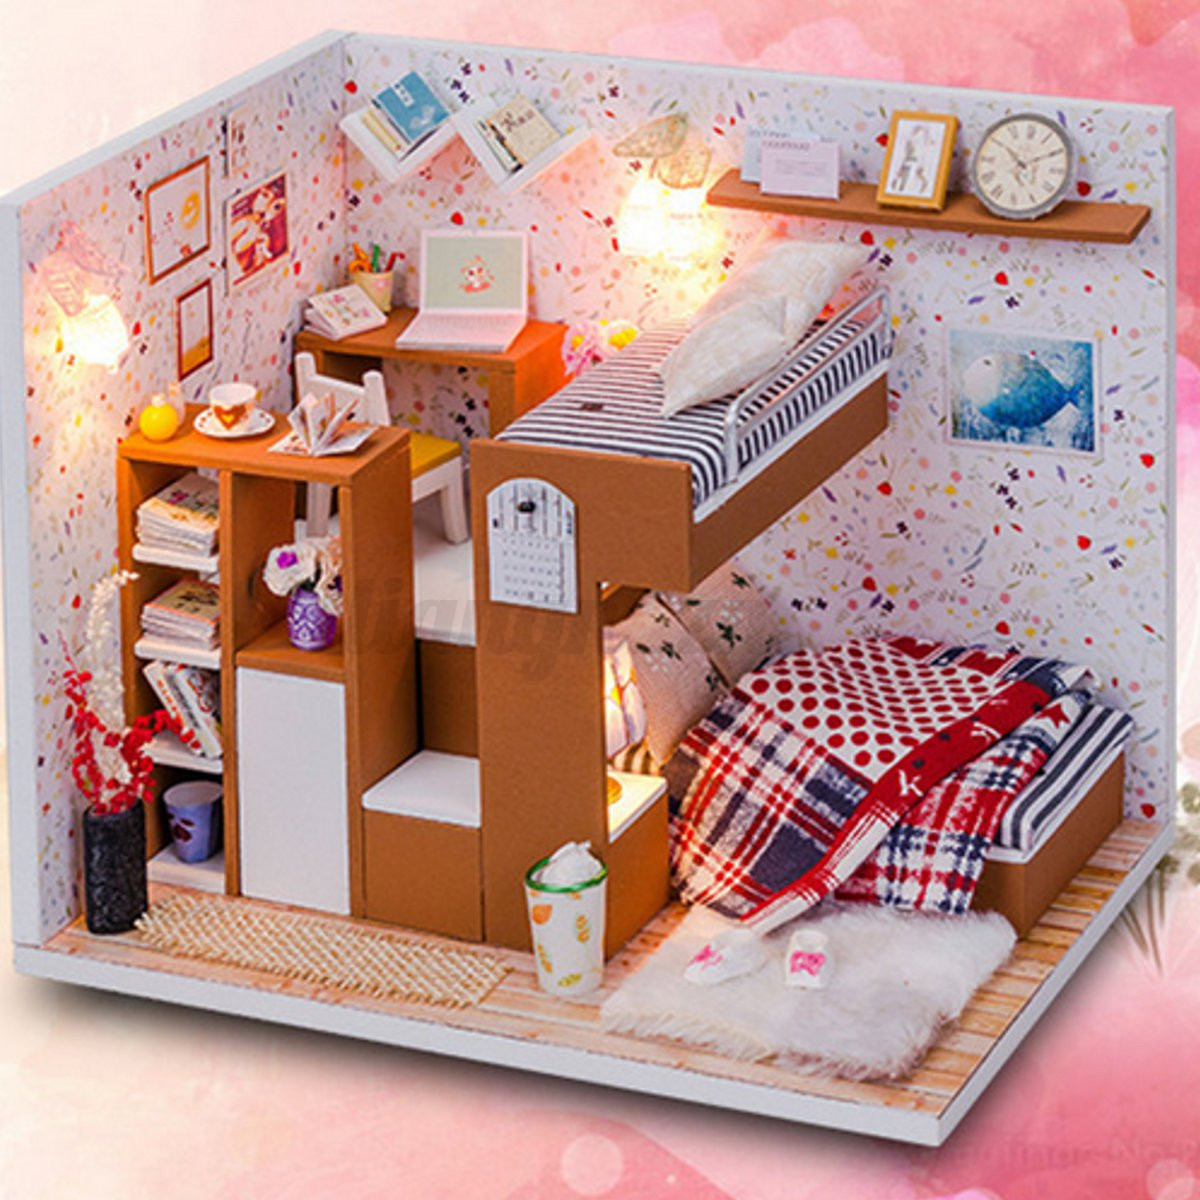 Diy Handmade Doll House Kit Miniature Led Wooden Furniture For Barbie Dollhouse